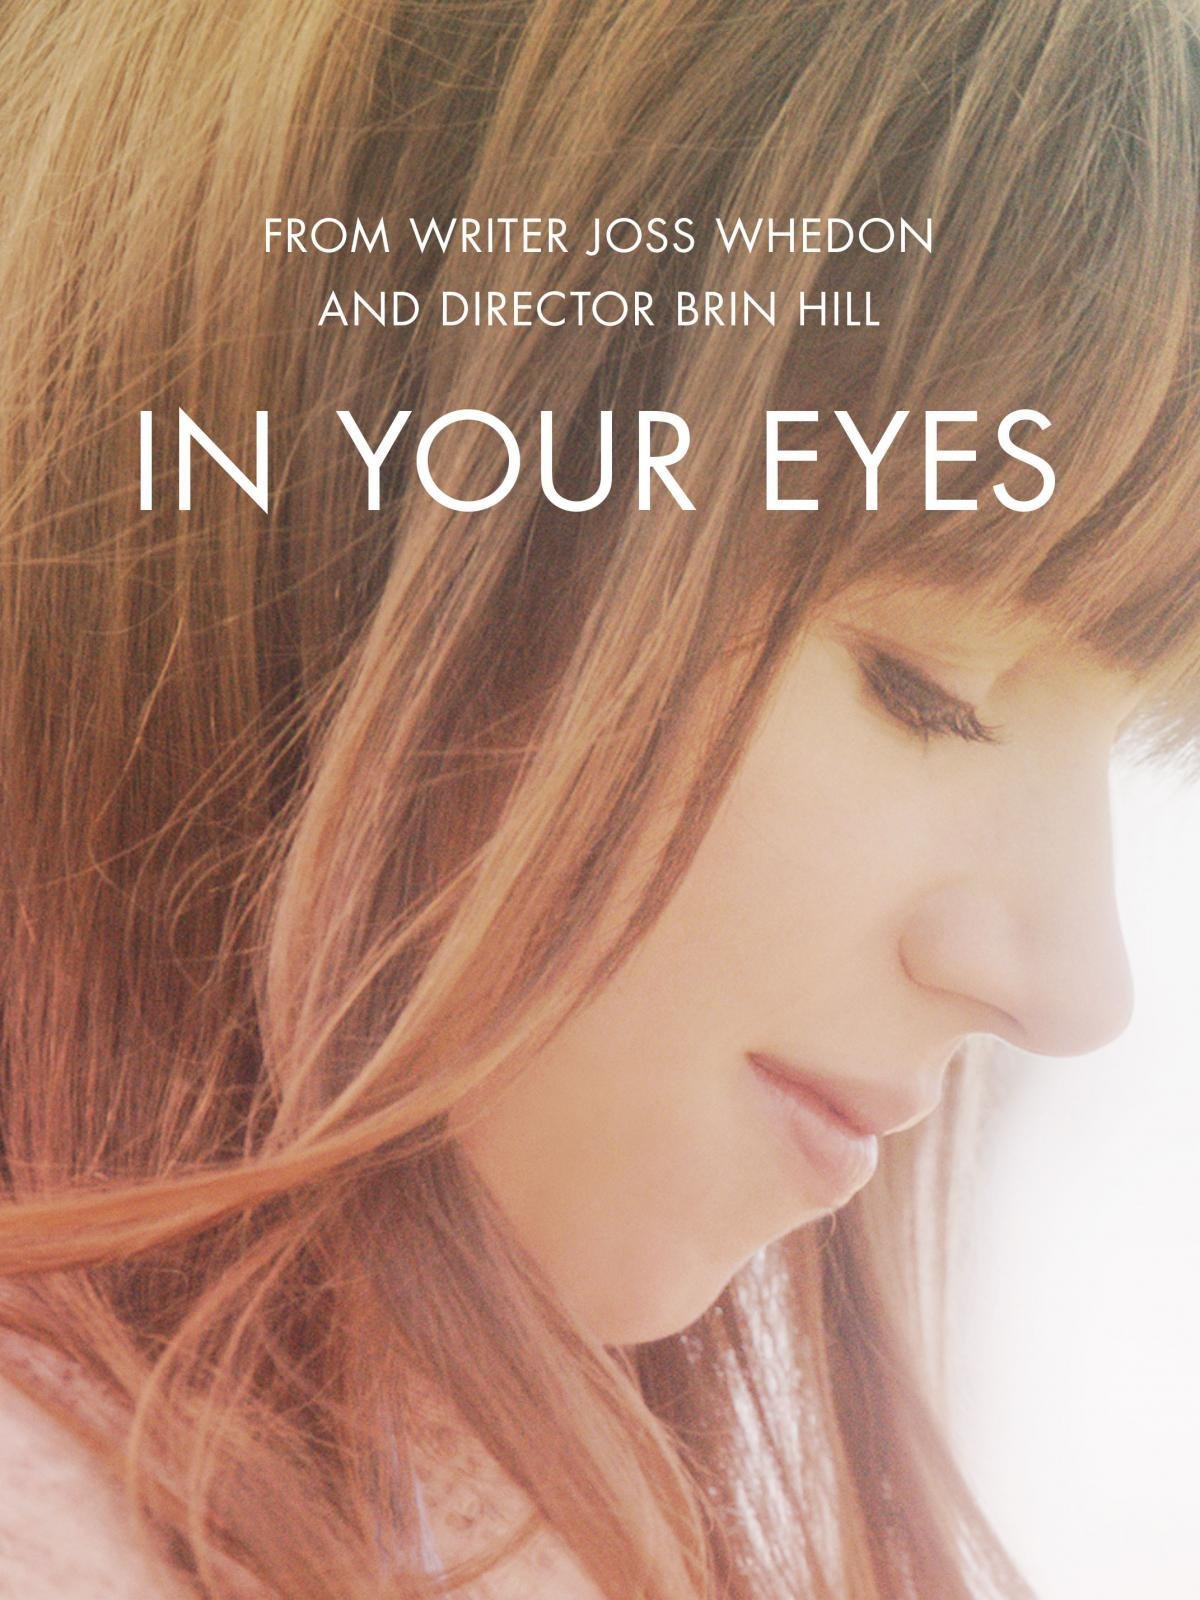 In your eyes photo